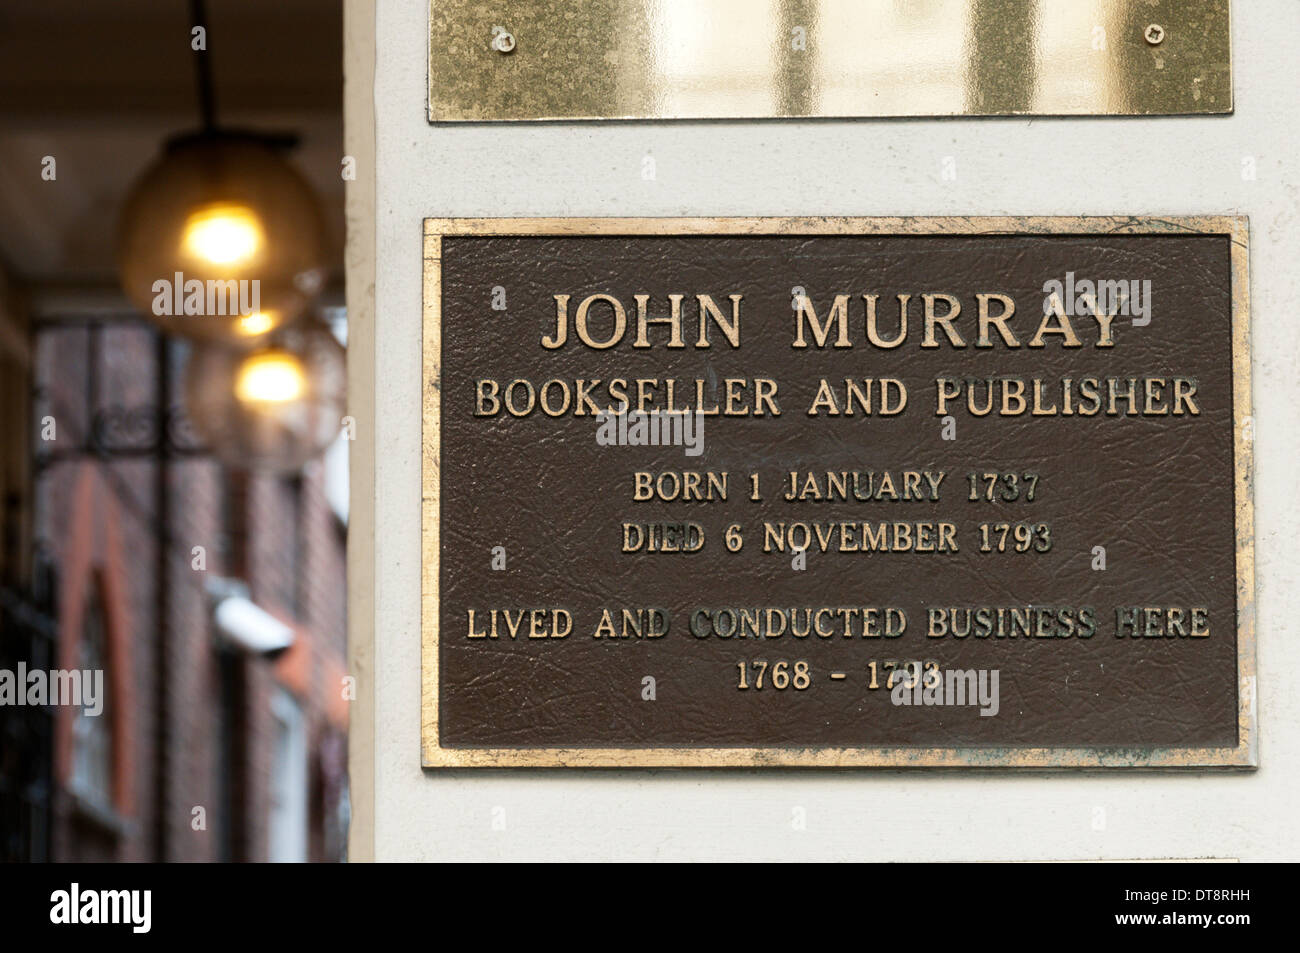 A plaque on the building occupied by the eighteenth century bookseller and publisher, John Murray. - Stock Image